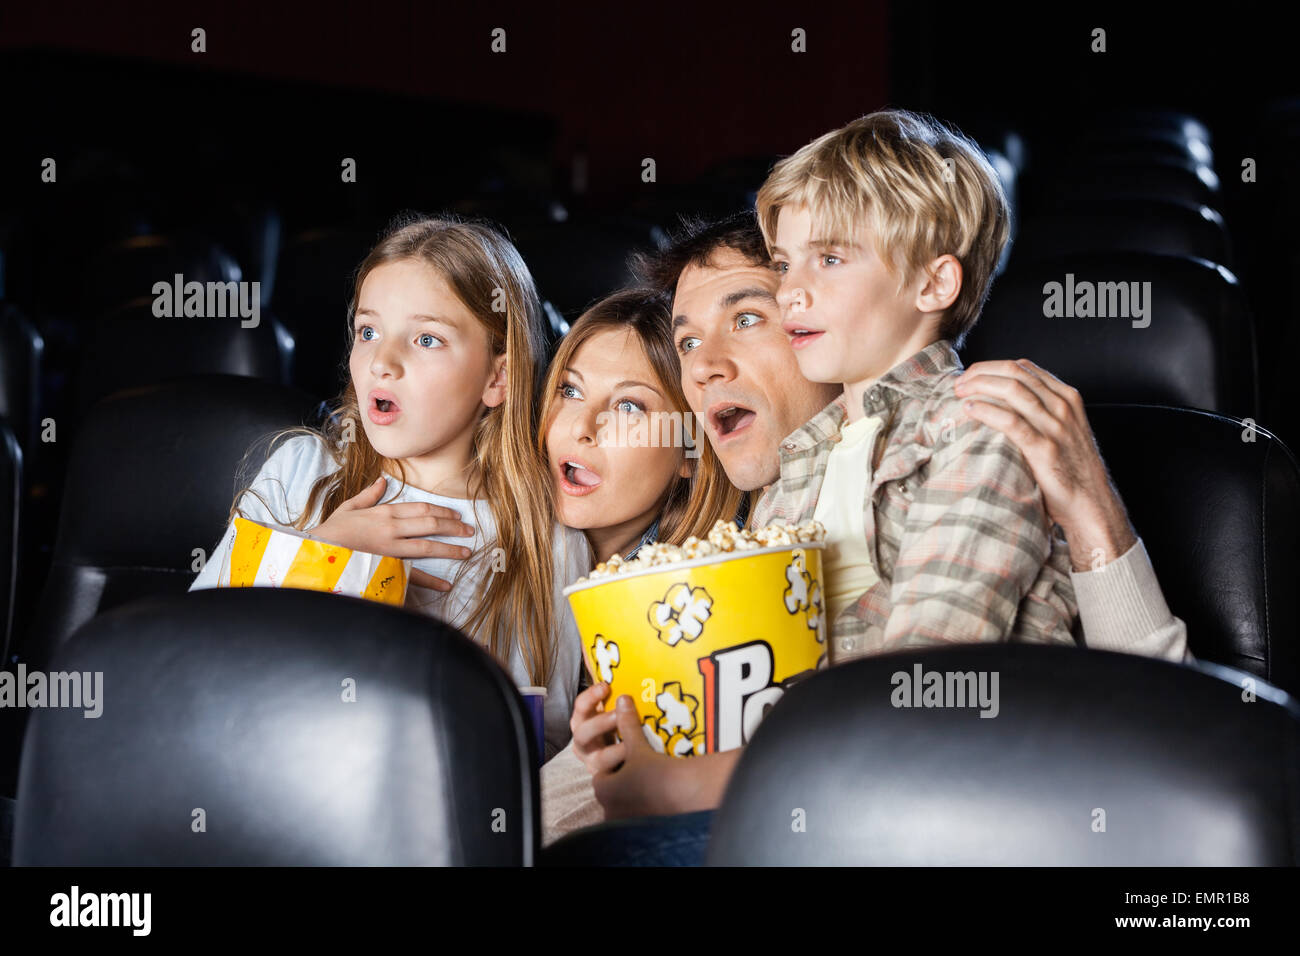 Shocked Family Watching Movie In Theater - Stock Image